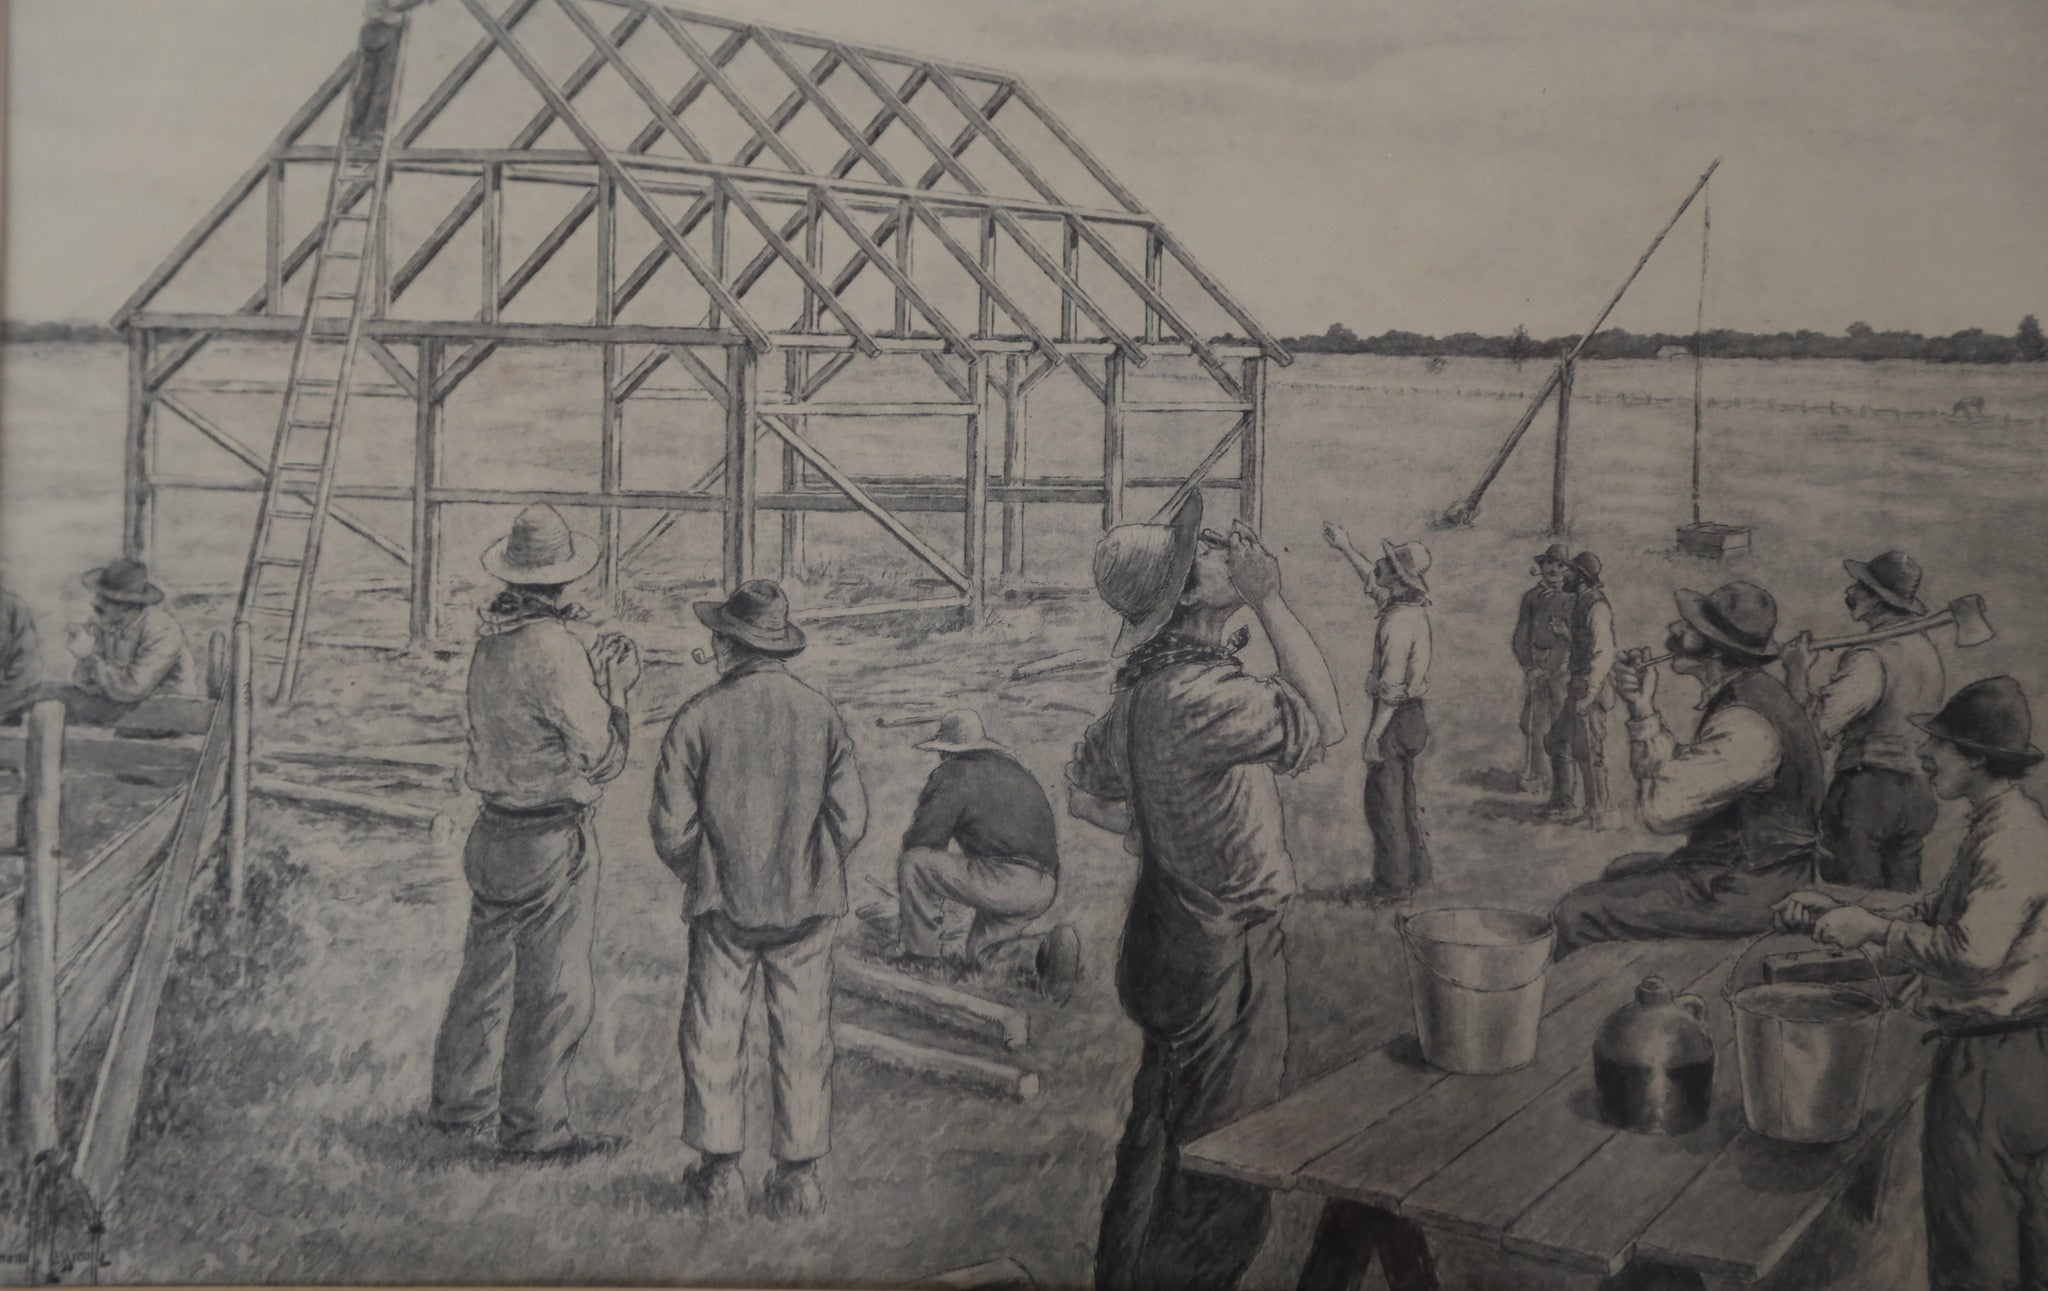 Barn Raising sketch by Edmond Massicotte